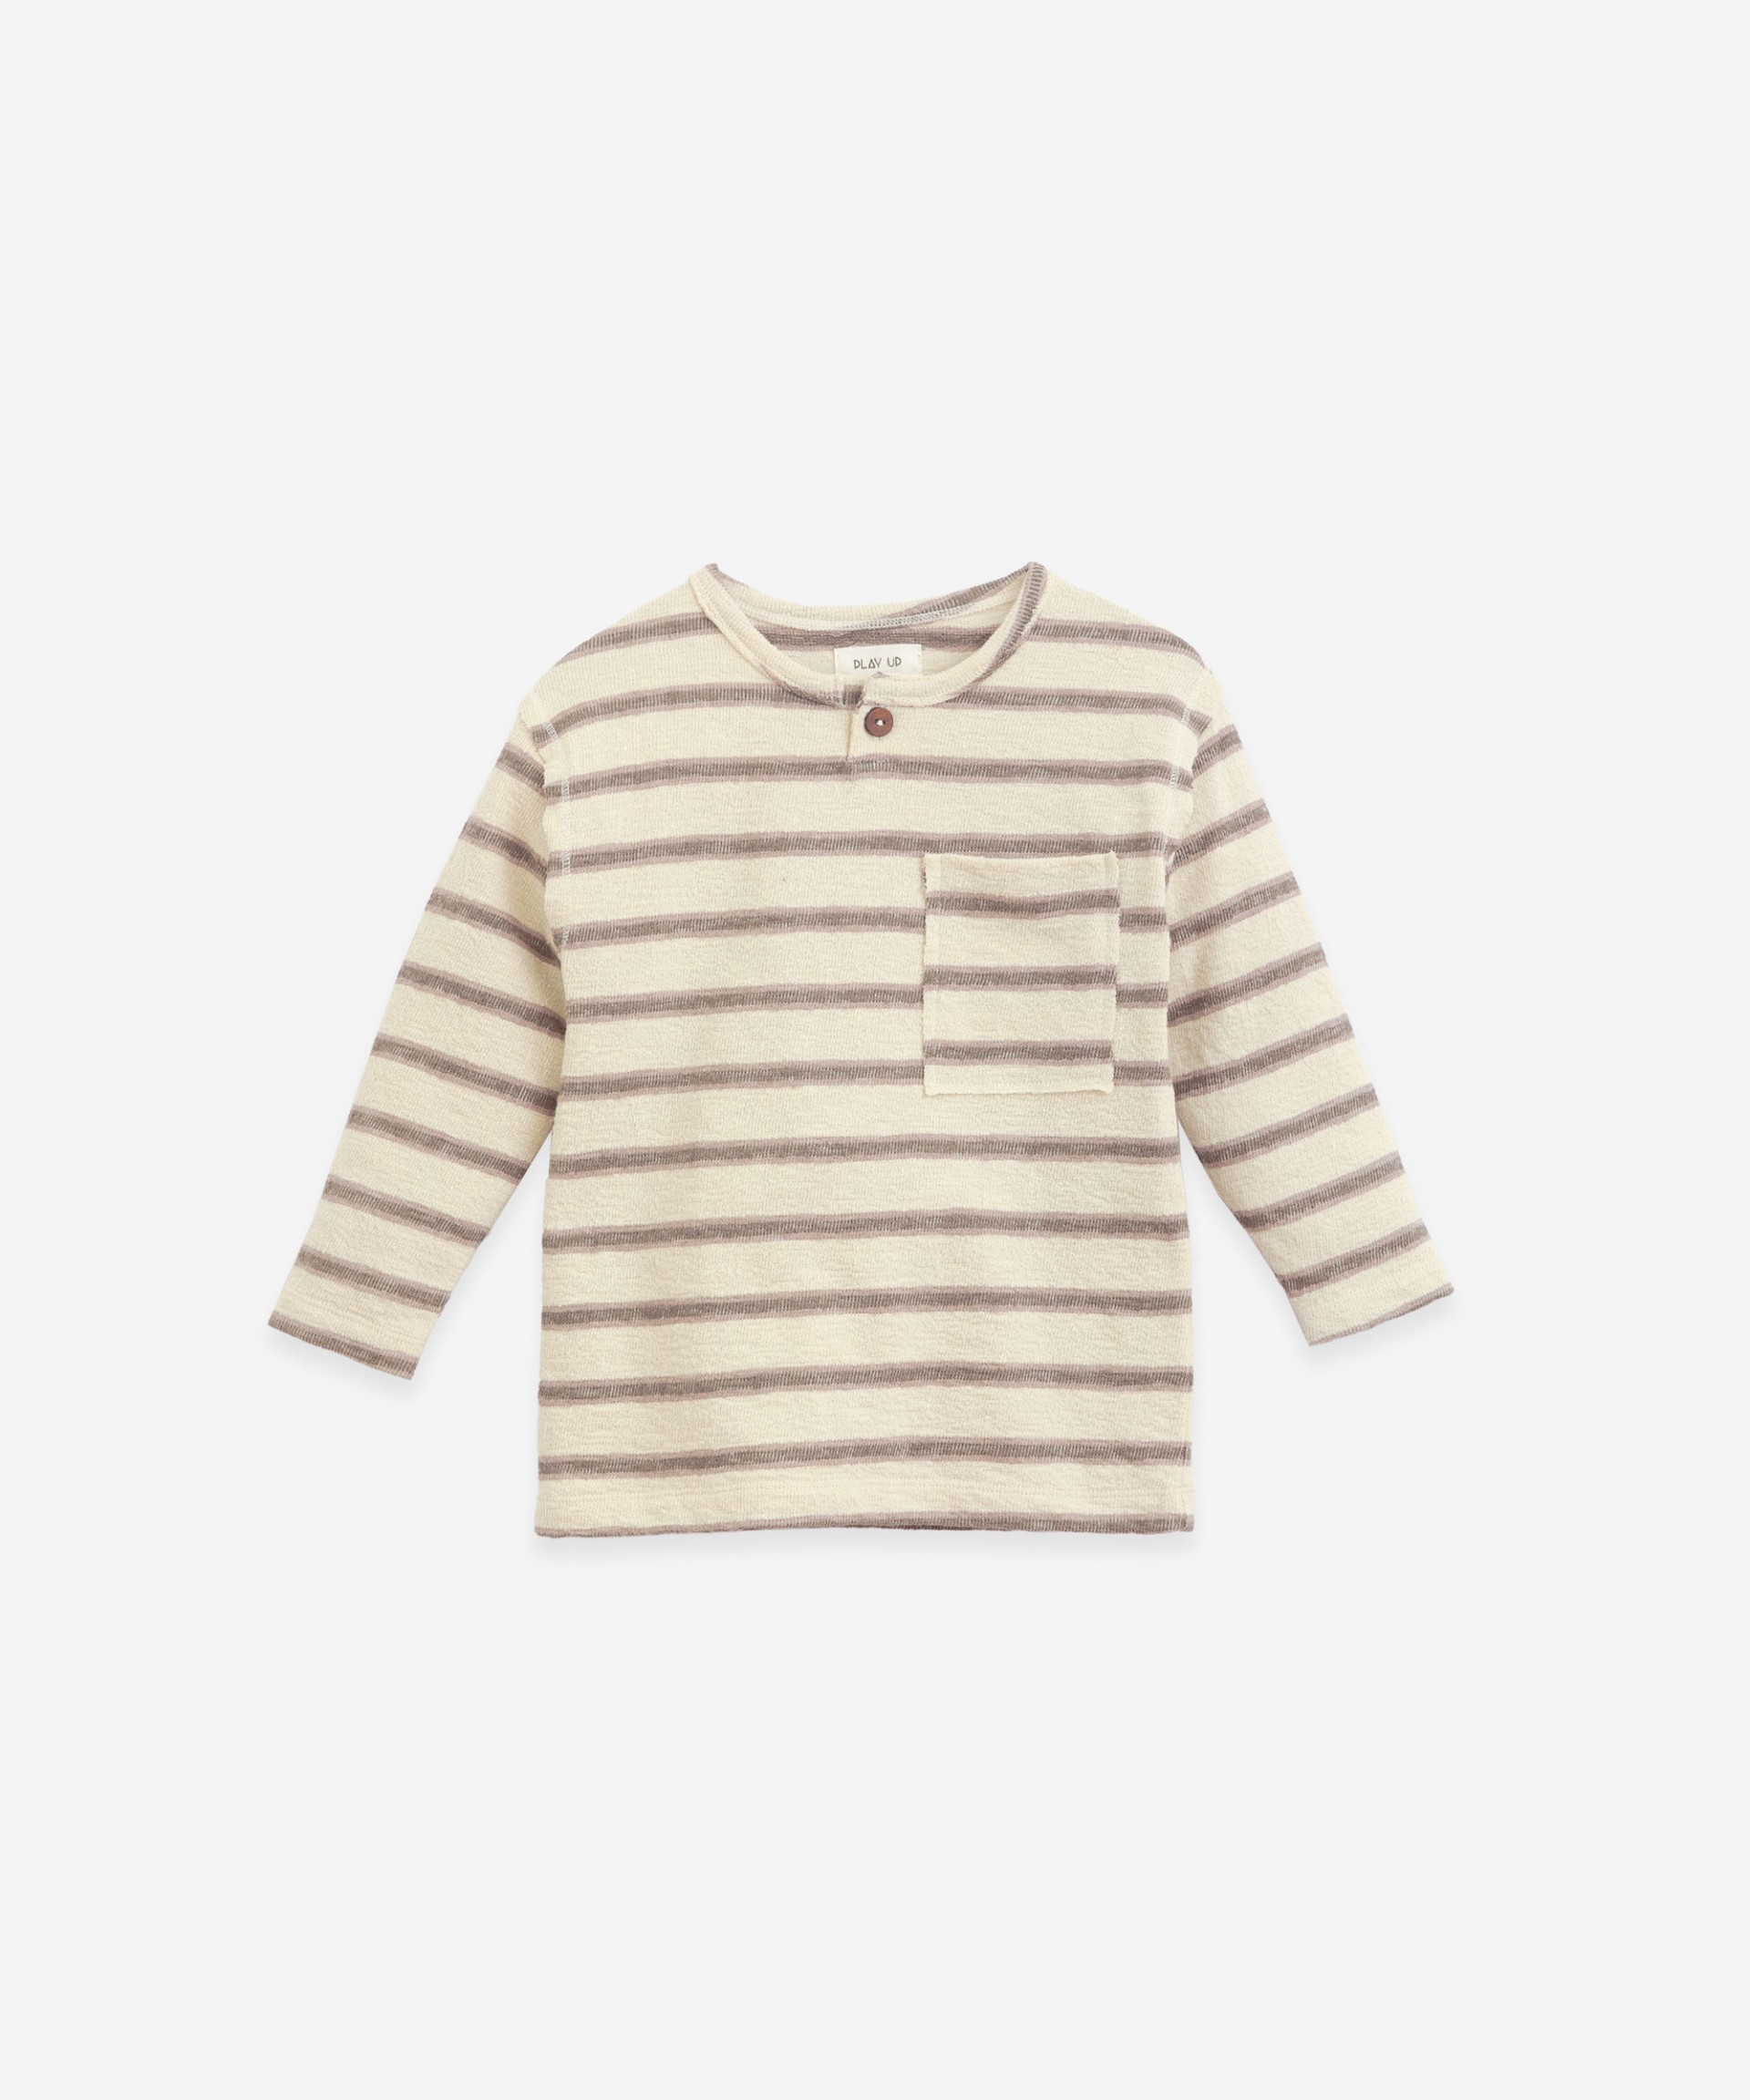 Cotton sweater | Botany